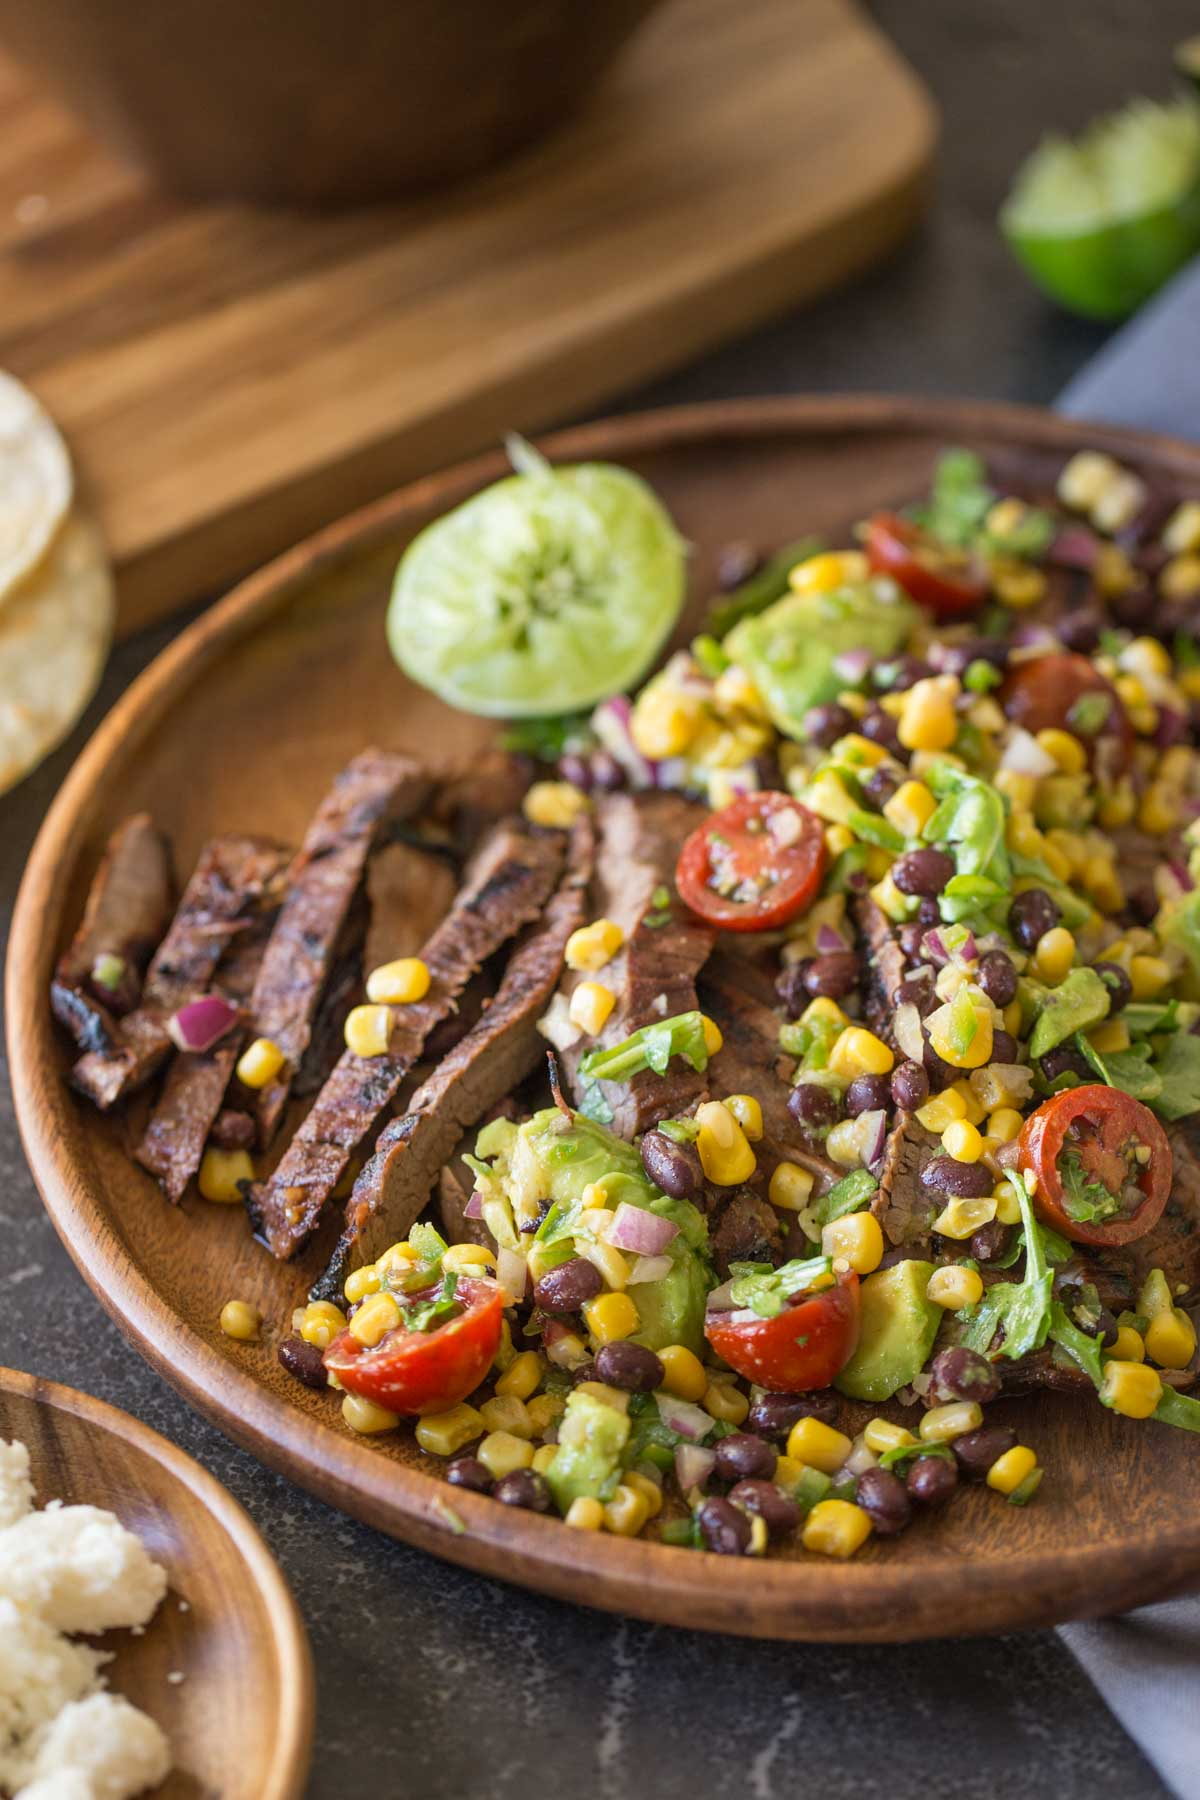 A large wood plate of sliced grilled marinated flank steak and avocado salad.